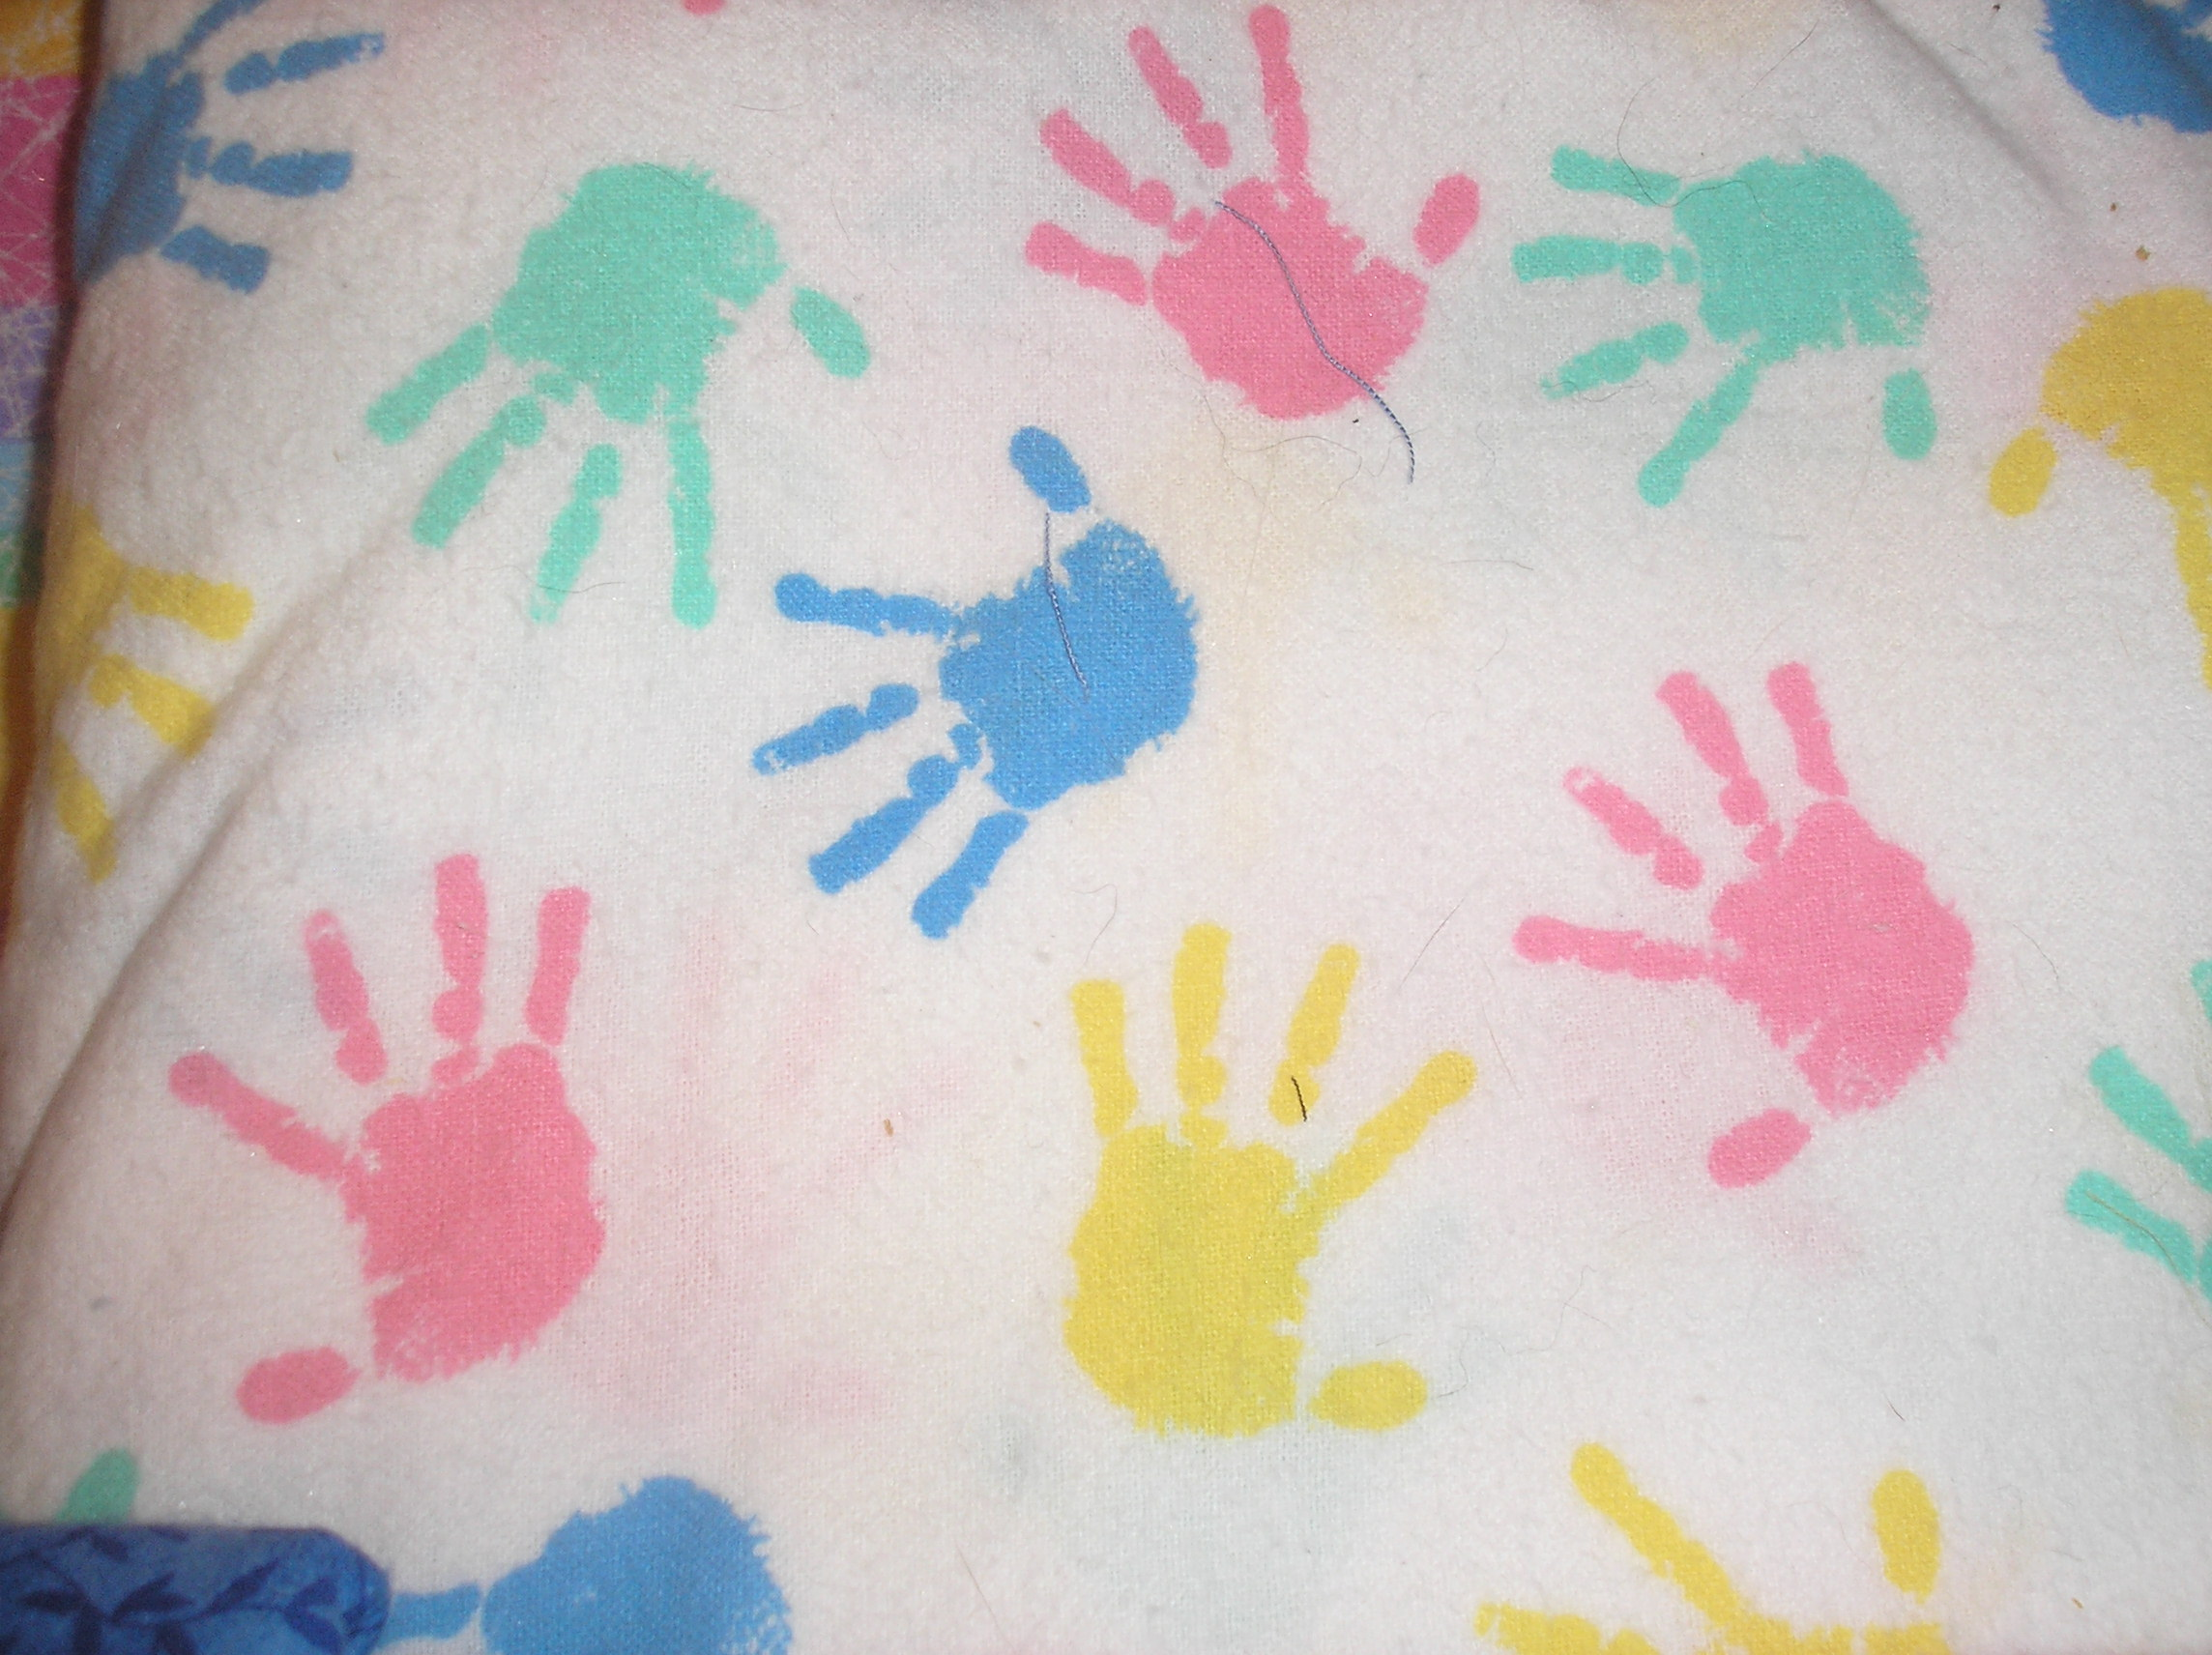 Pastel hand-prints on white background